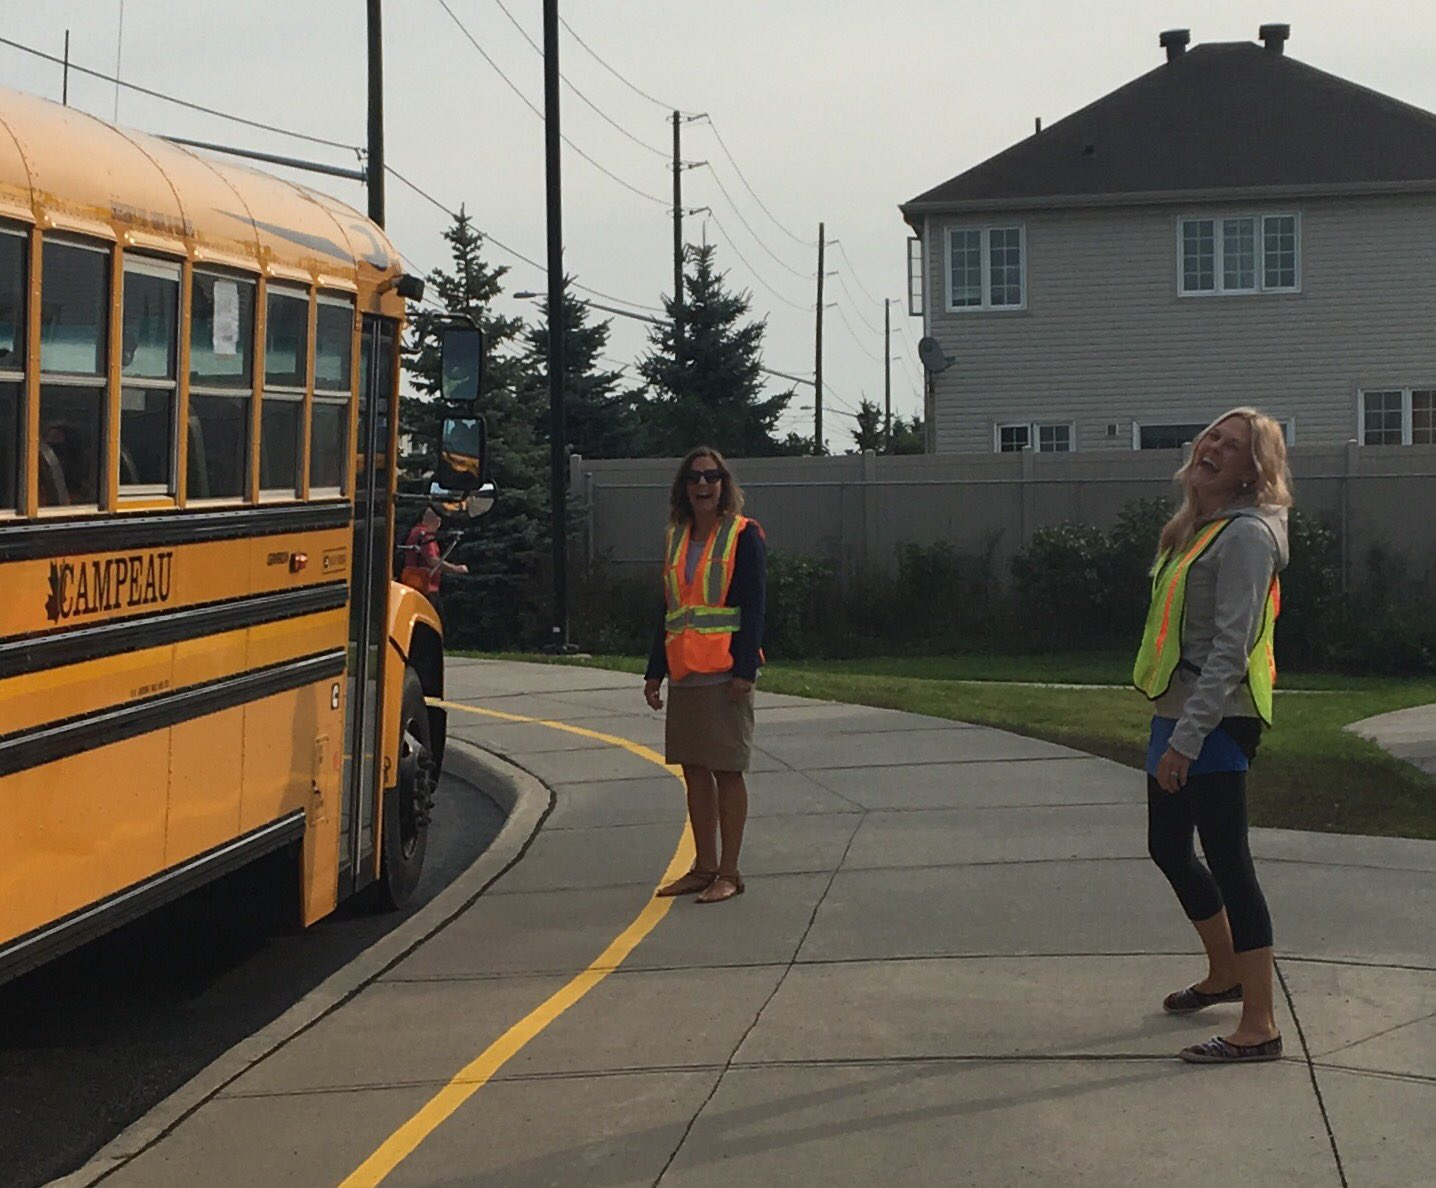 @StCeciliaOCSB students were greeted by these smiling faces, this morning! #ocsbFirstDay #sce https://t.co/tGMYLSW5jj